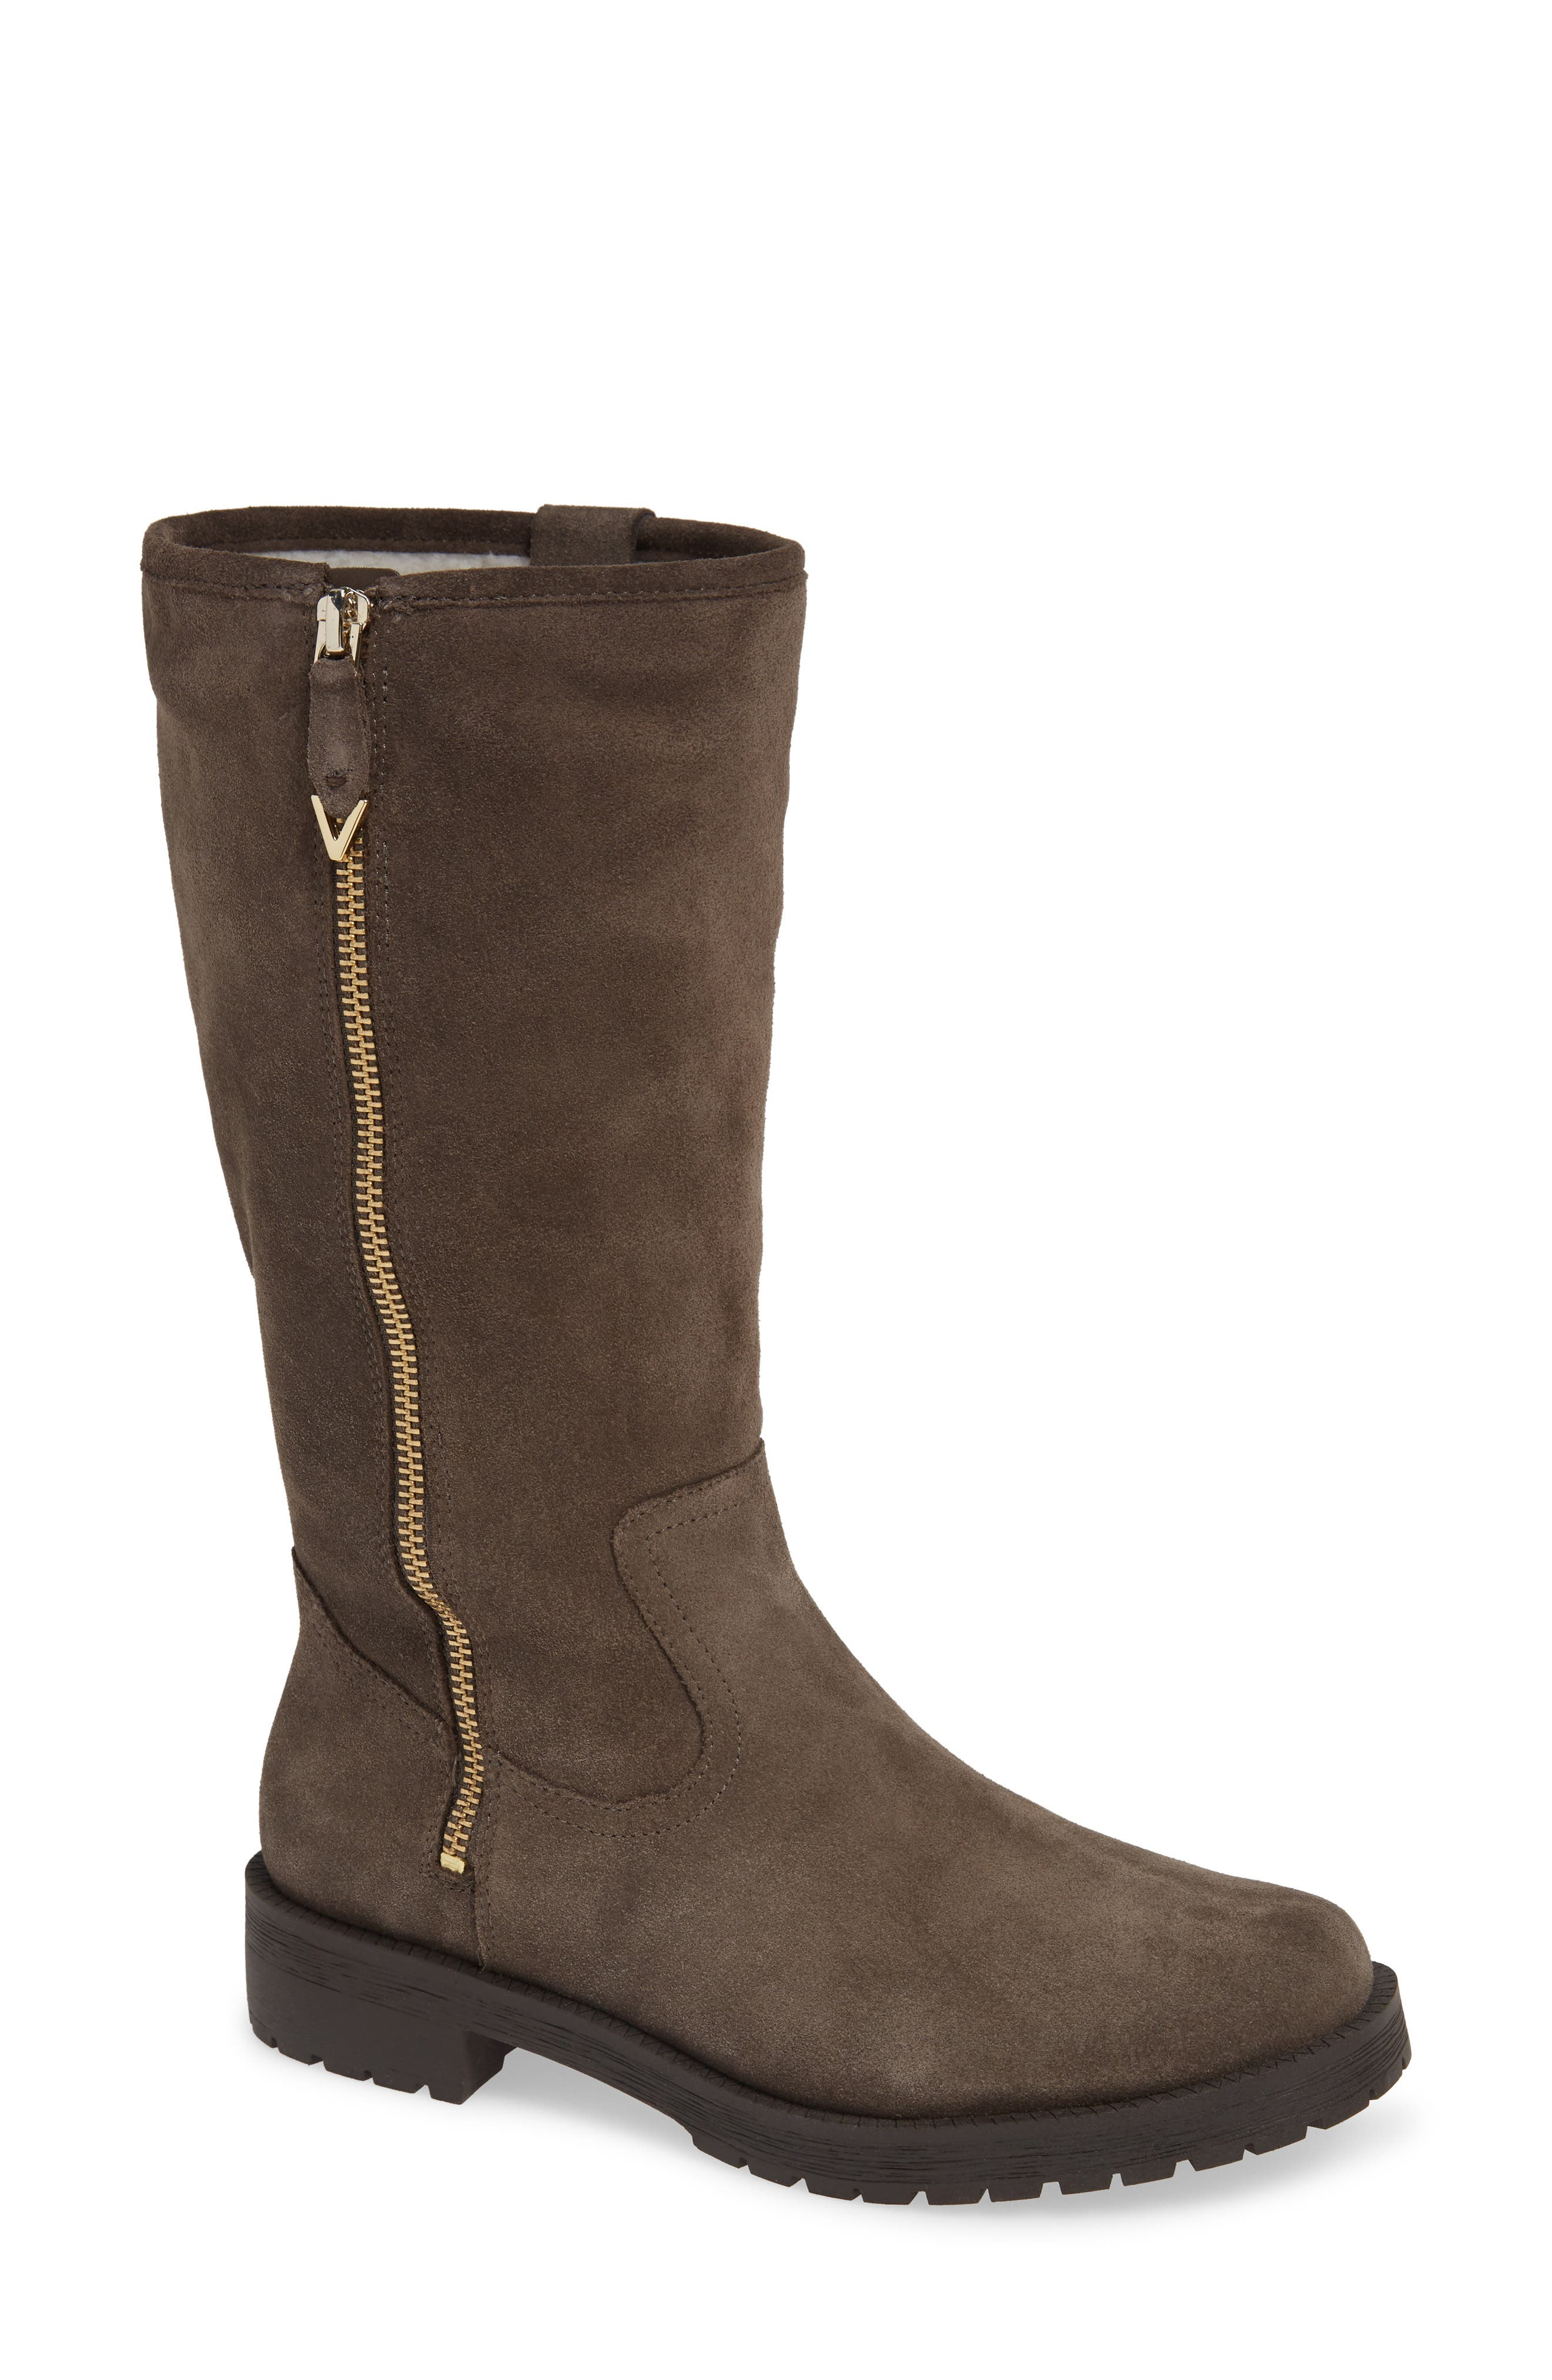 Mica Boot,                         Main,                         color, GREIGE SUEDE